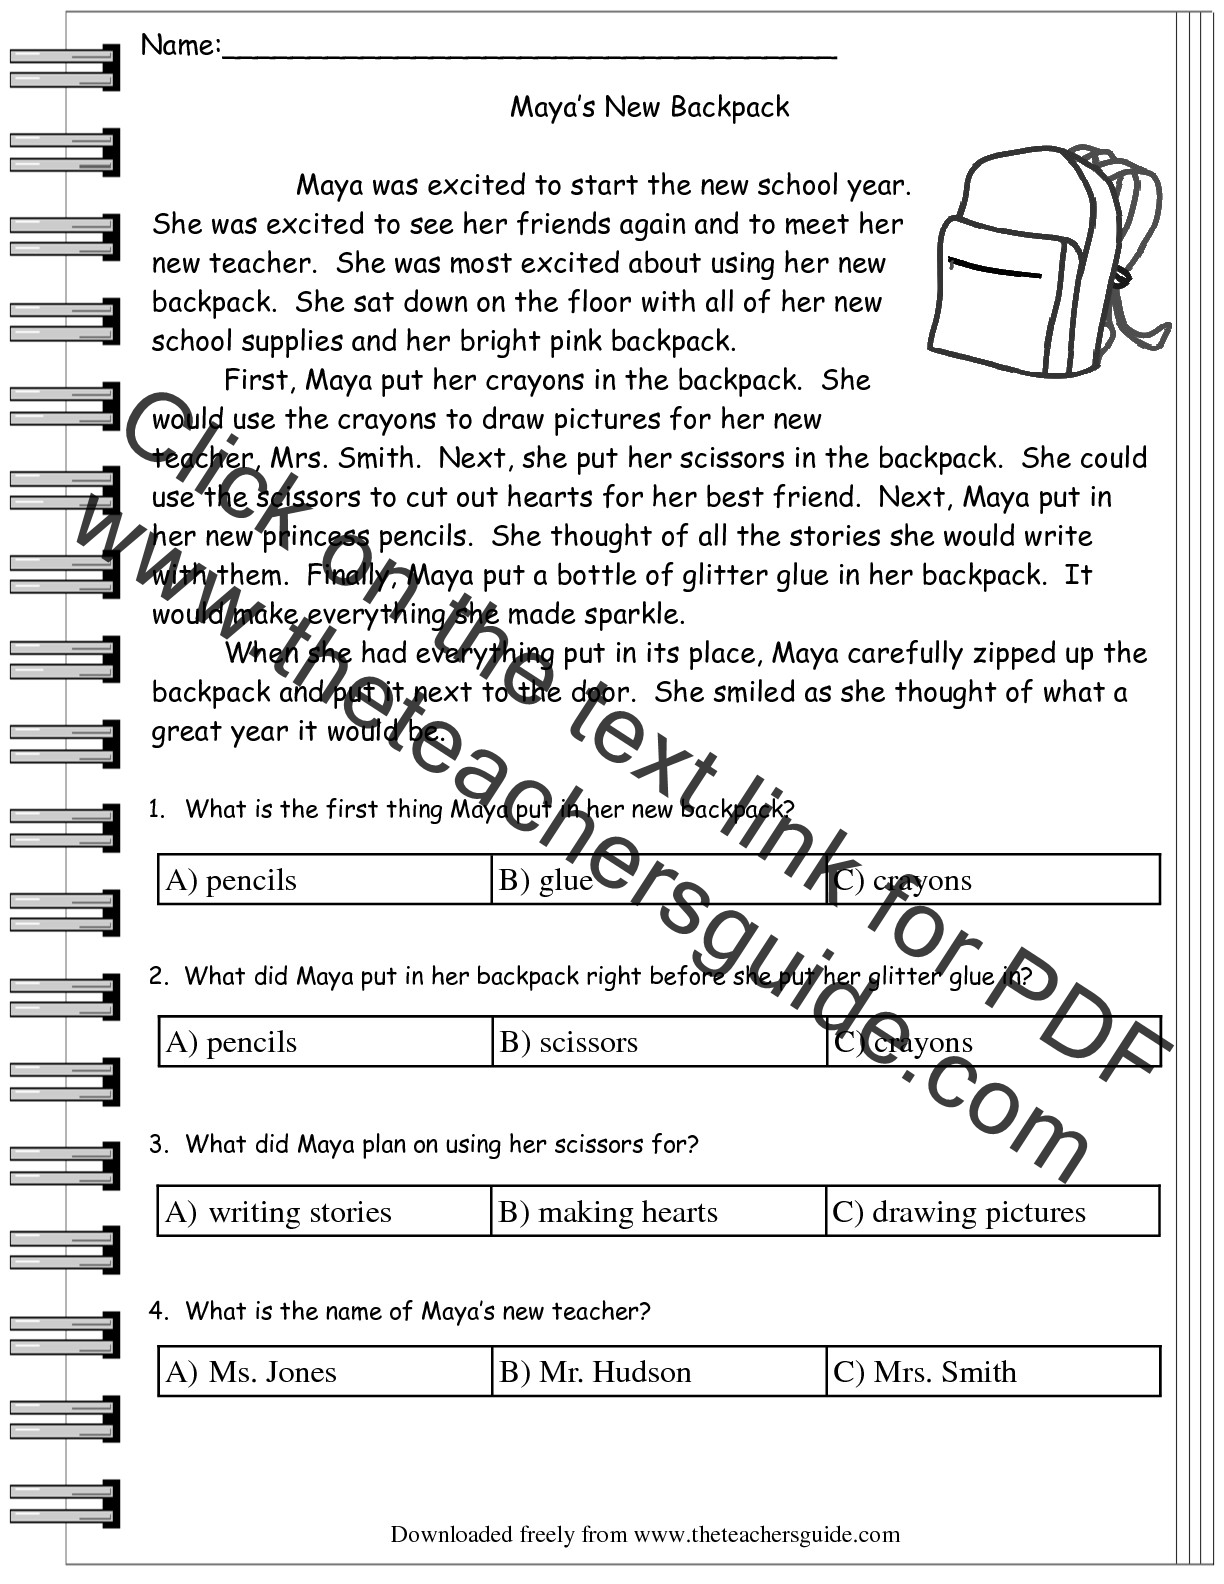 Worksheet Reading Comperhension reading literature comprehension worksheets from the teachers guide